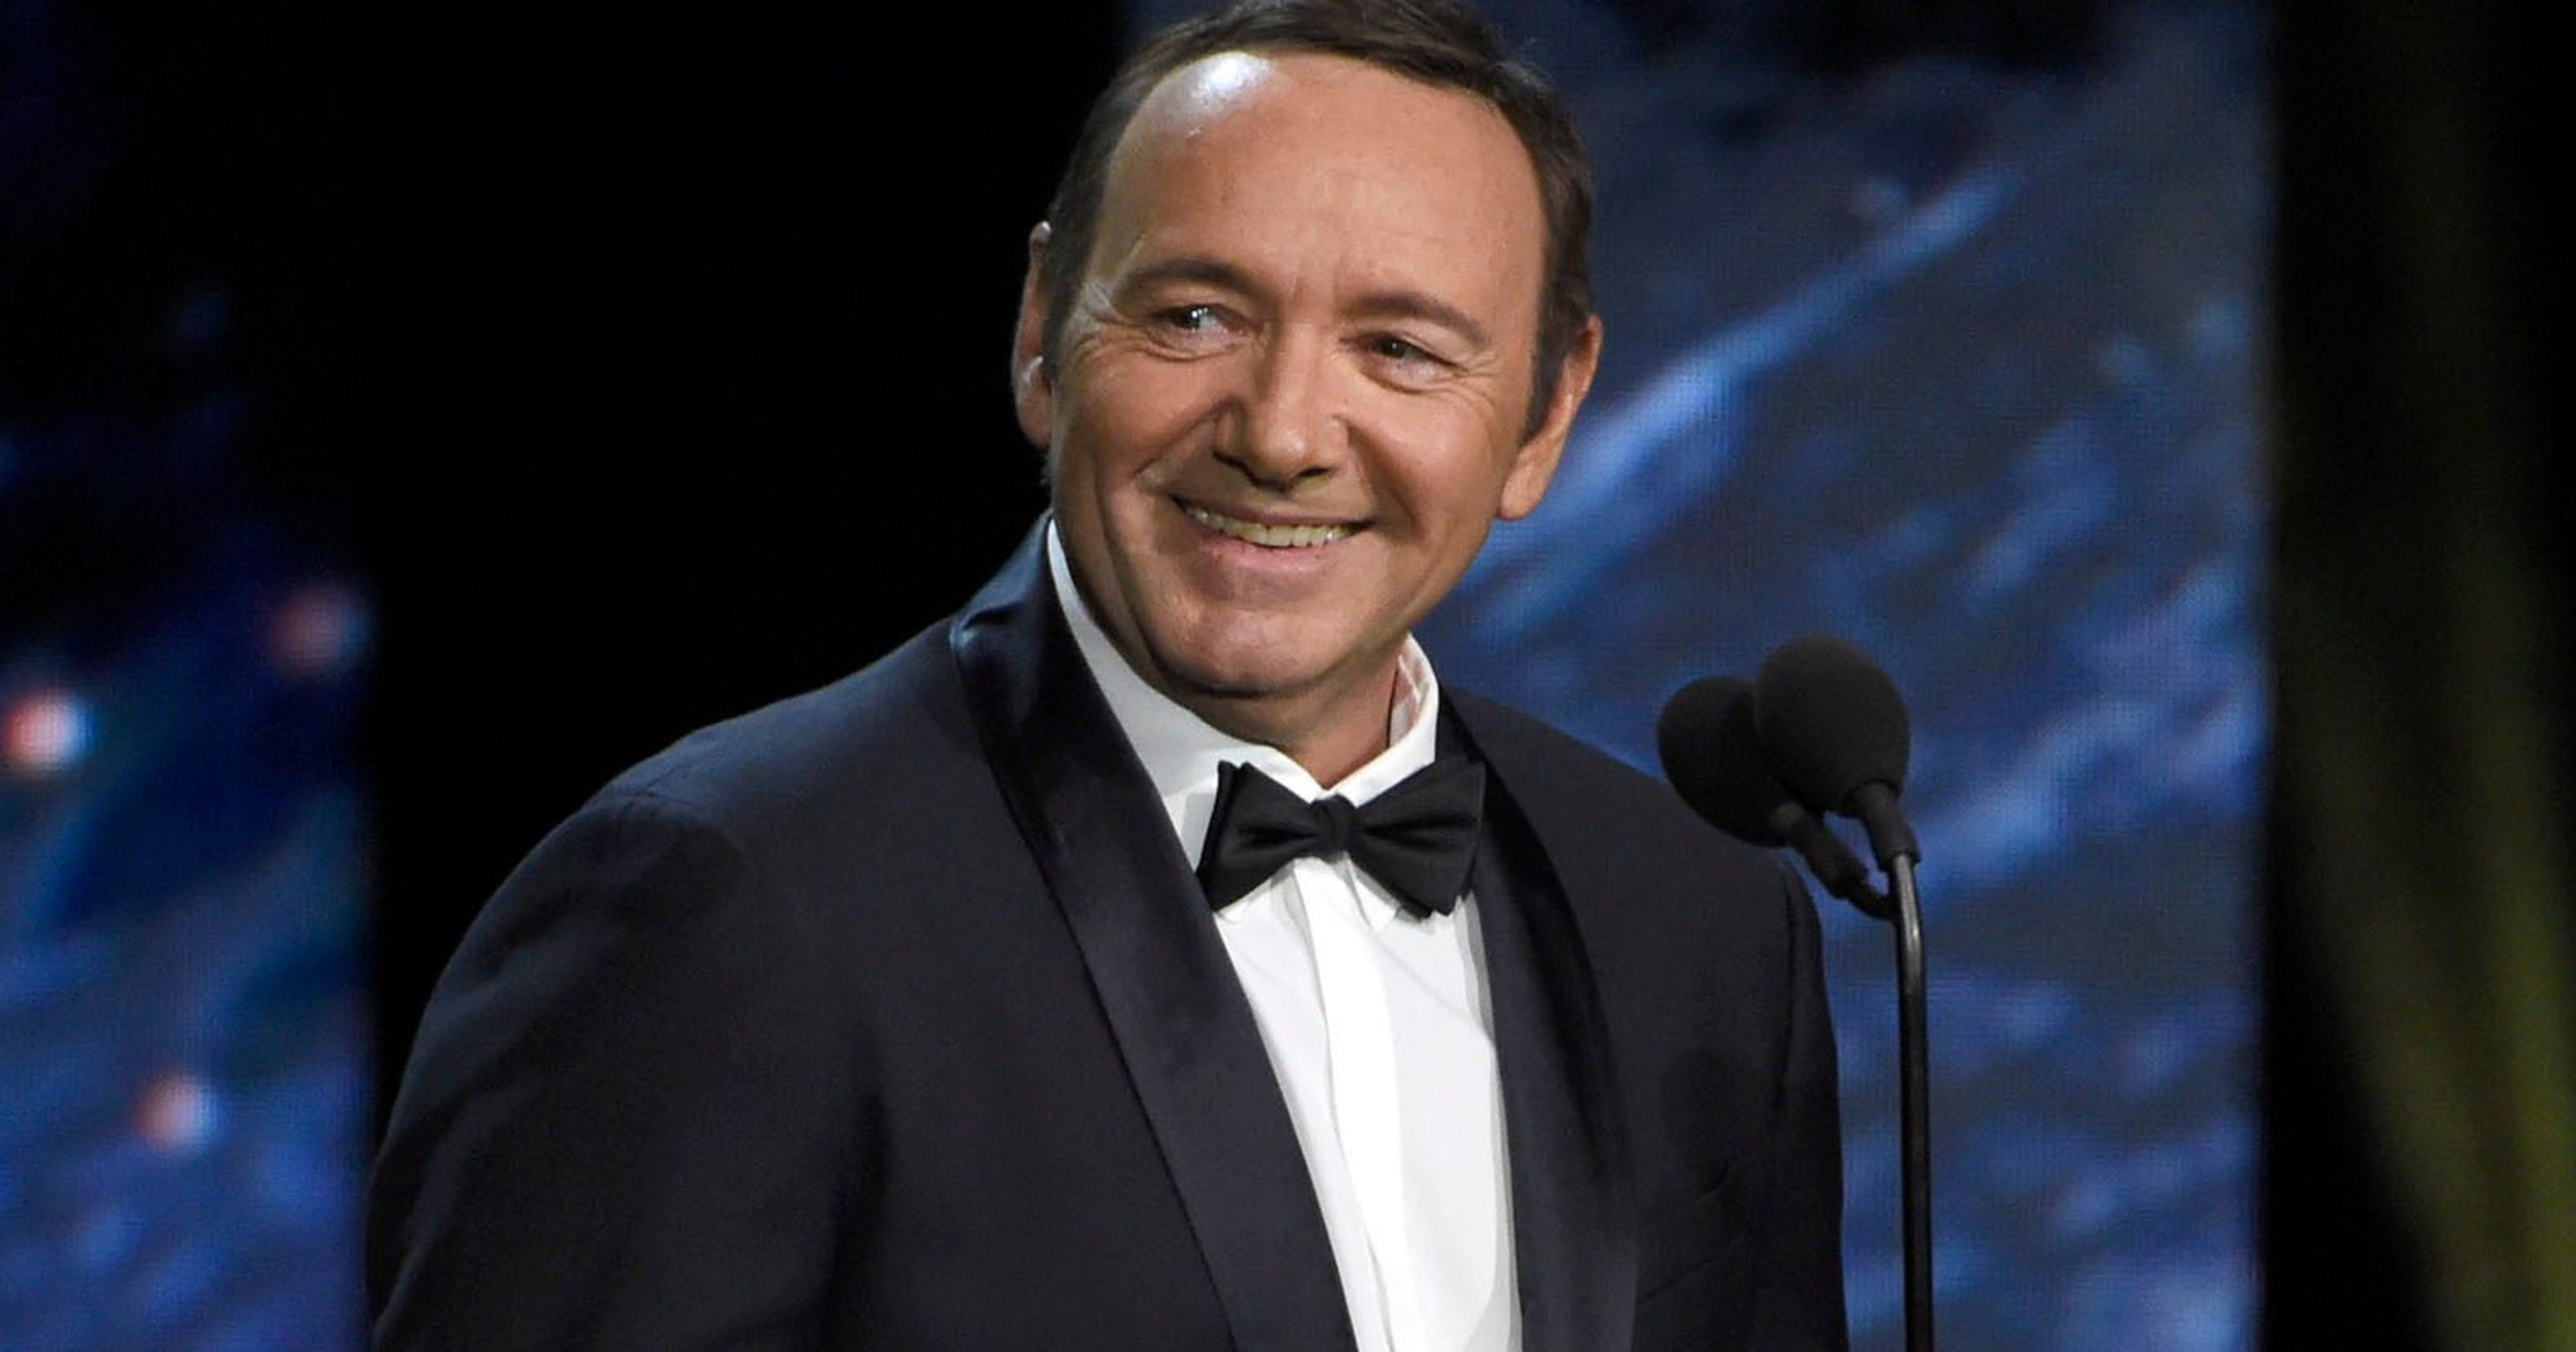 Here's why you've heard nothing about Kevin Spacey's new film 'Billionaire Boys'